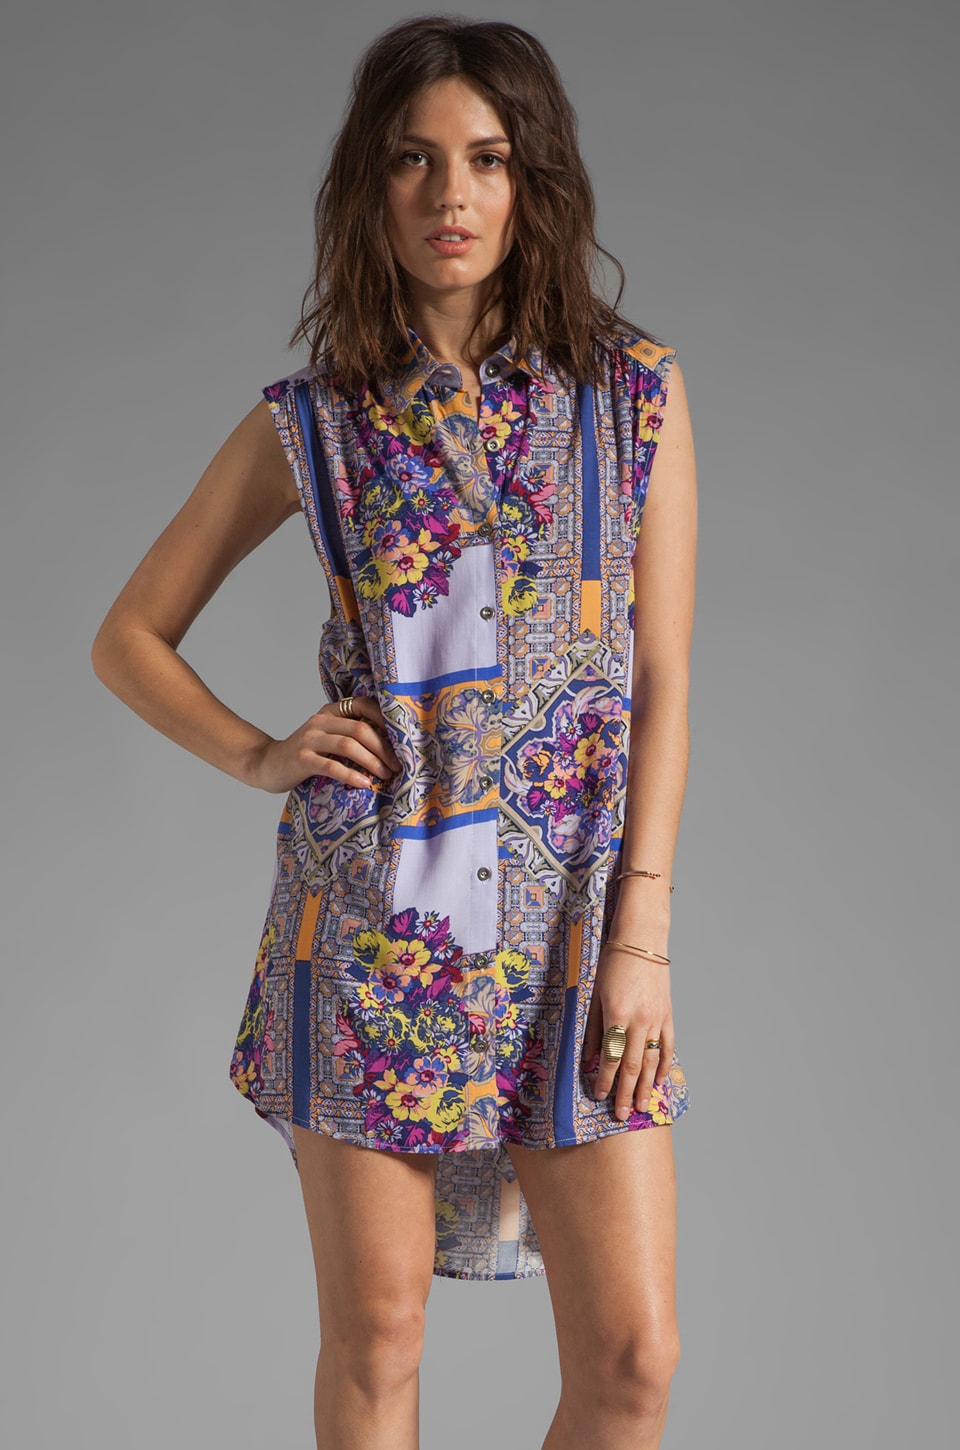 MINKPINK Distant Traveler Sleeveless Tunic in Multi